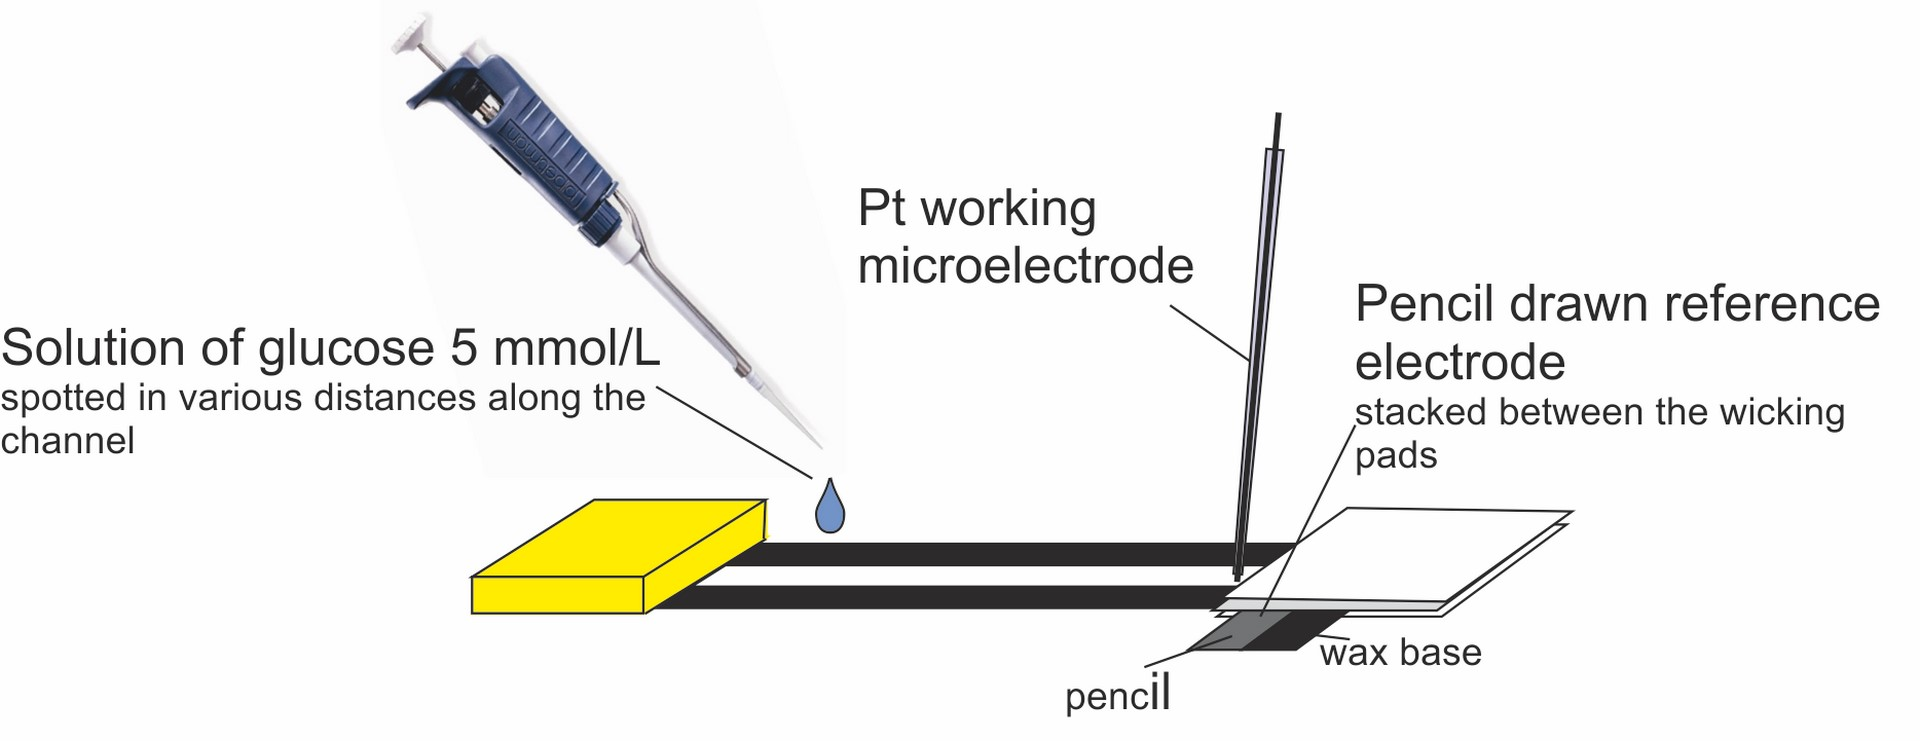 pencil lead as a material for microfluidic 3d electrode assemblies charge transfer processes in hydrodynamic systems research group